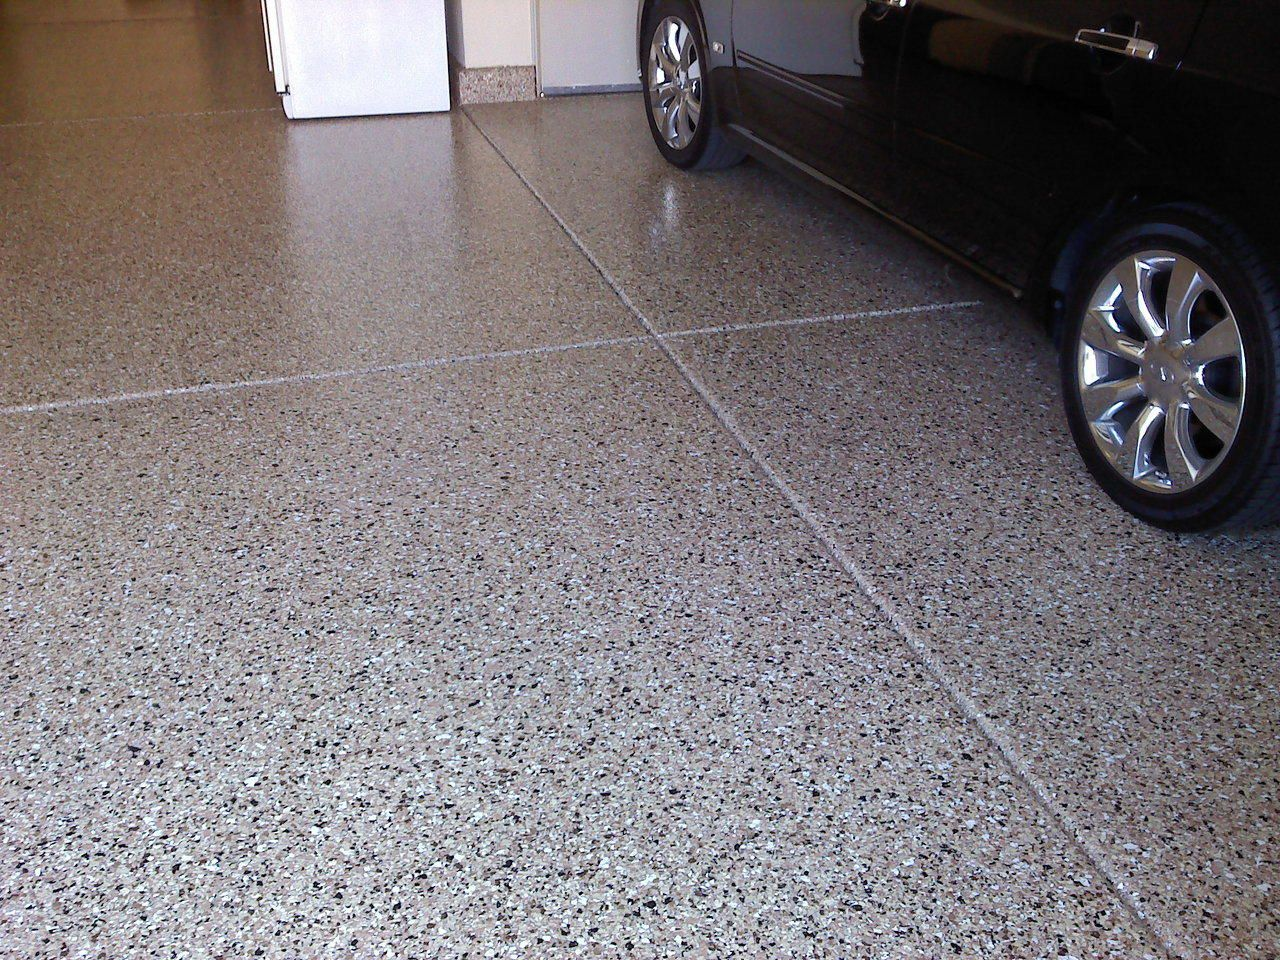 17 Best images about Epoxy Floors on Pinterest